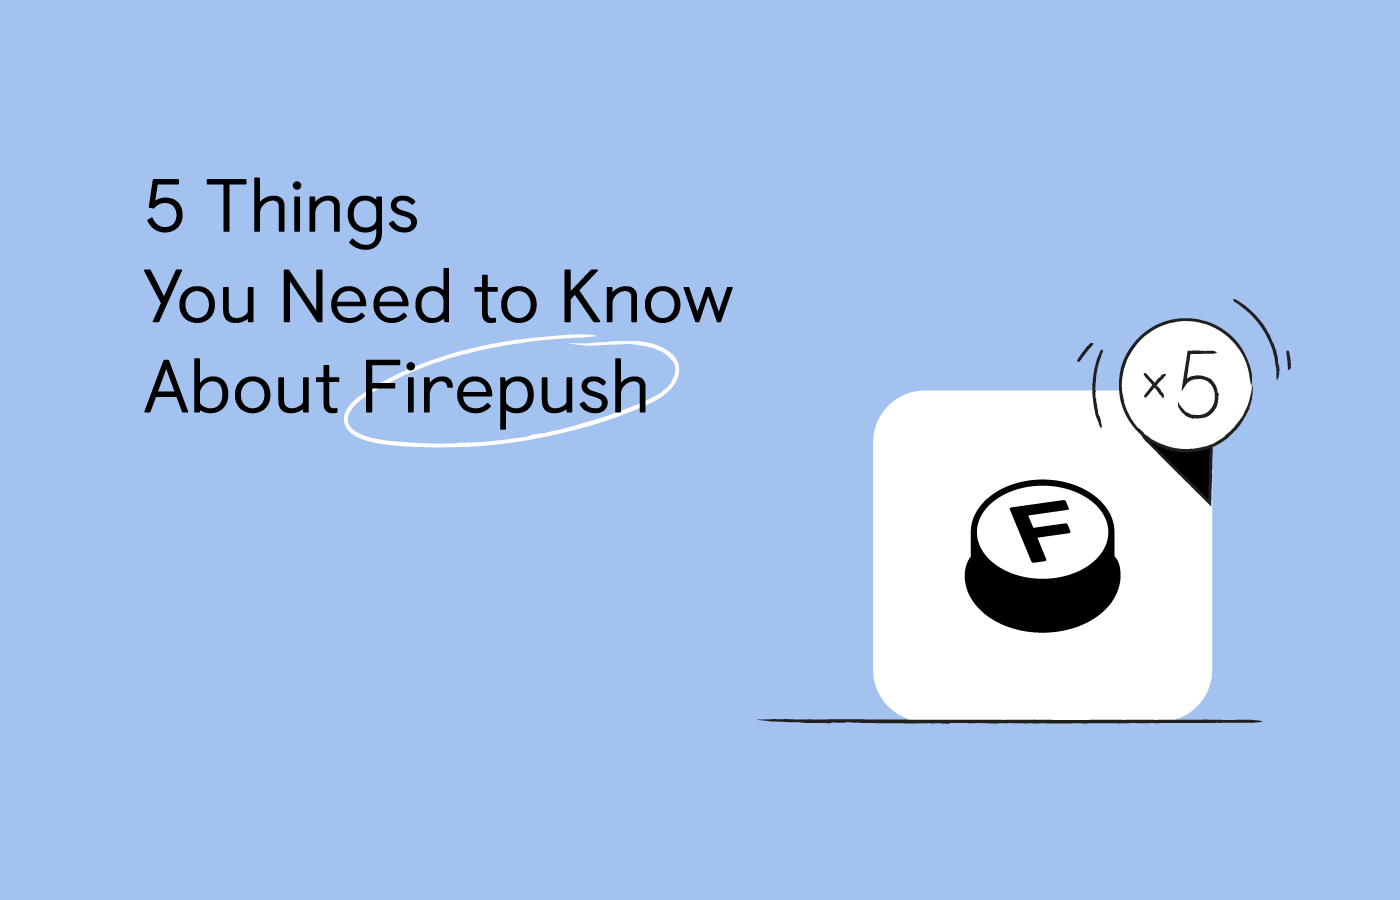 5 Things you need to know about Firepush